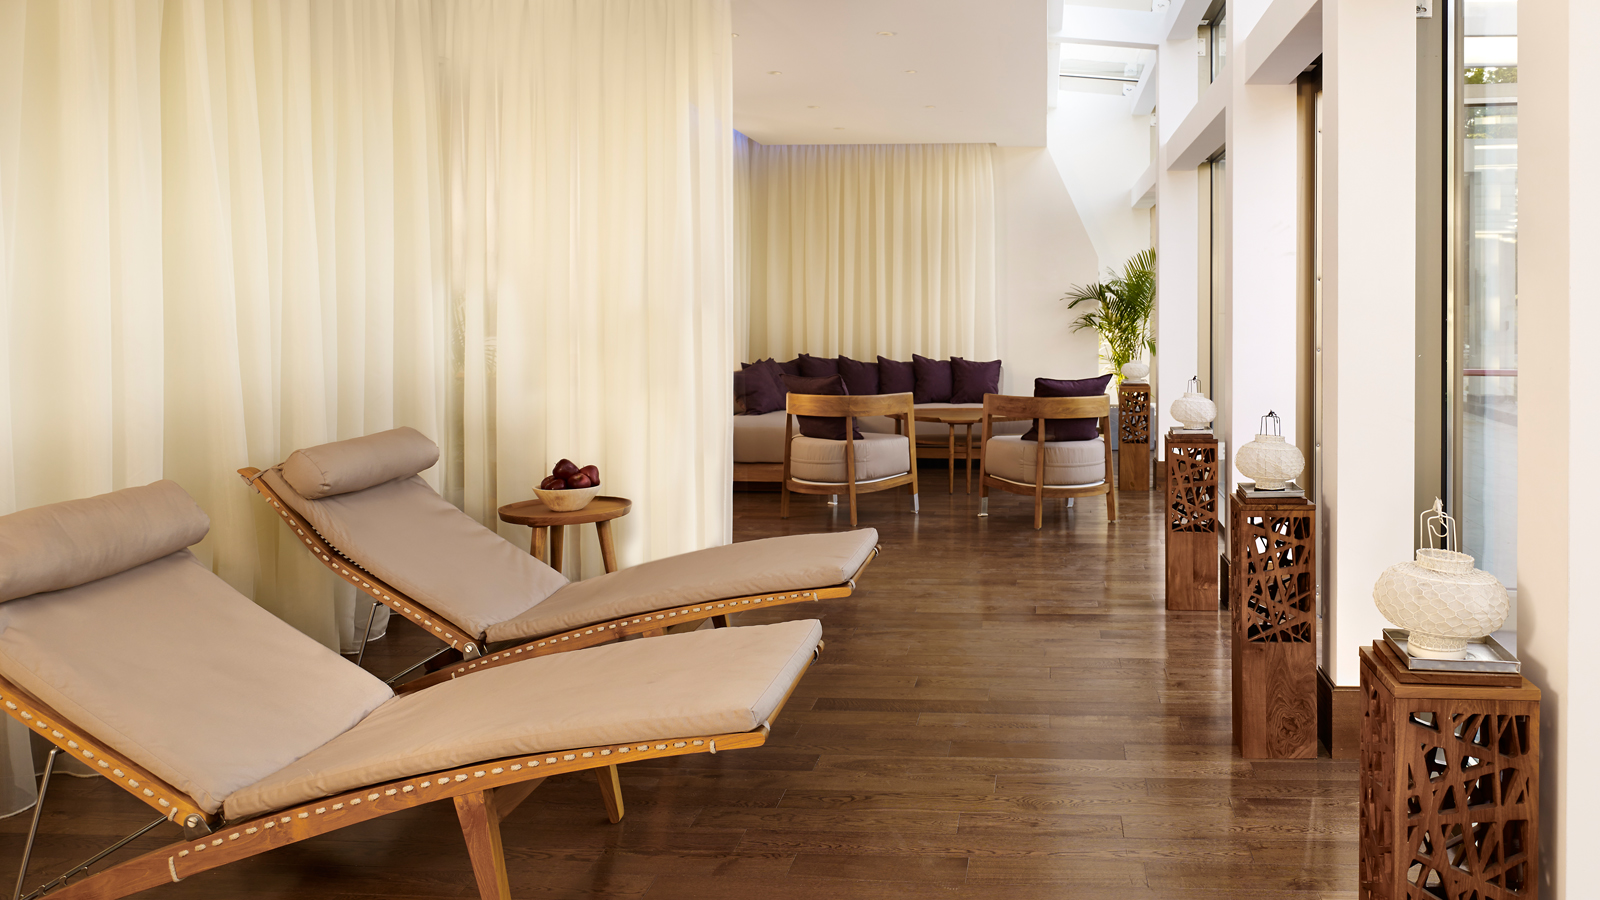 Experience relaxation at the Limegrove Fitness & Spa